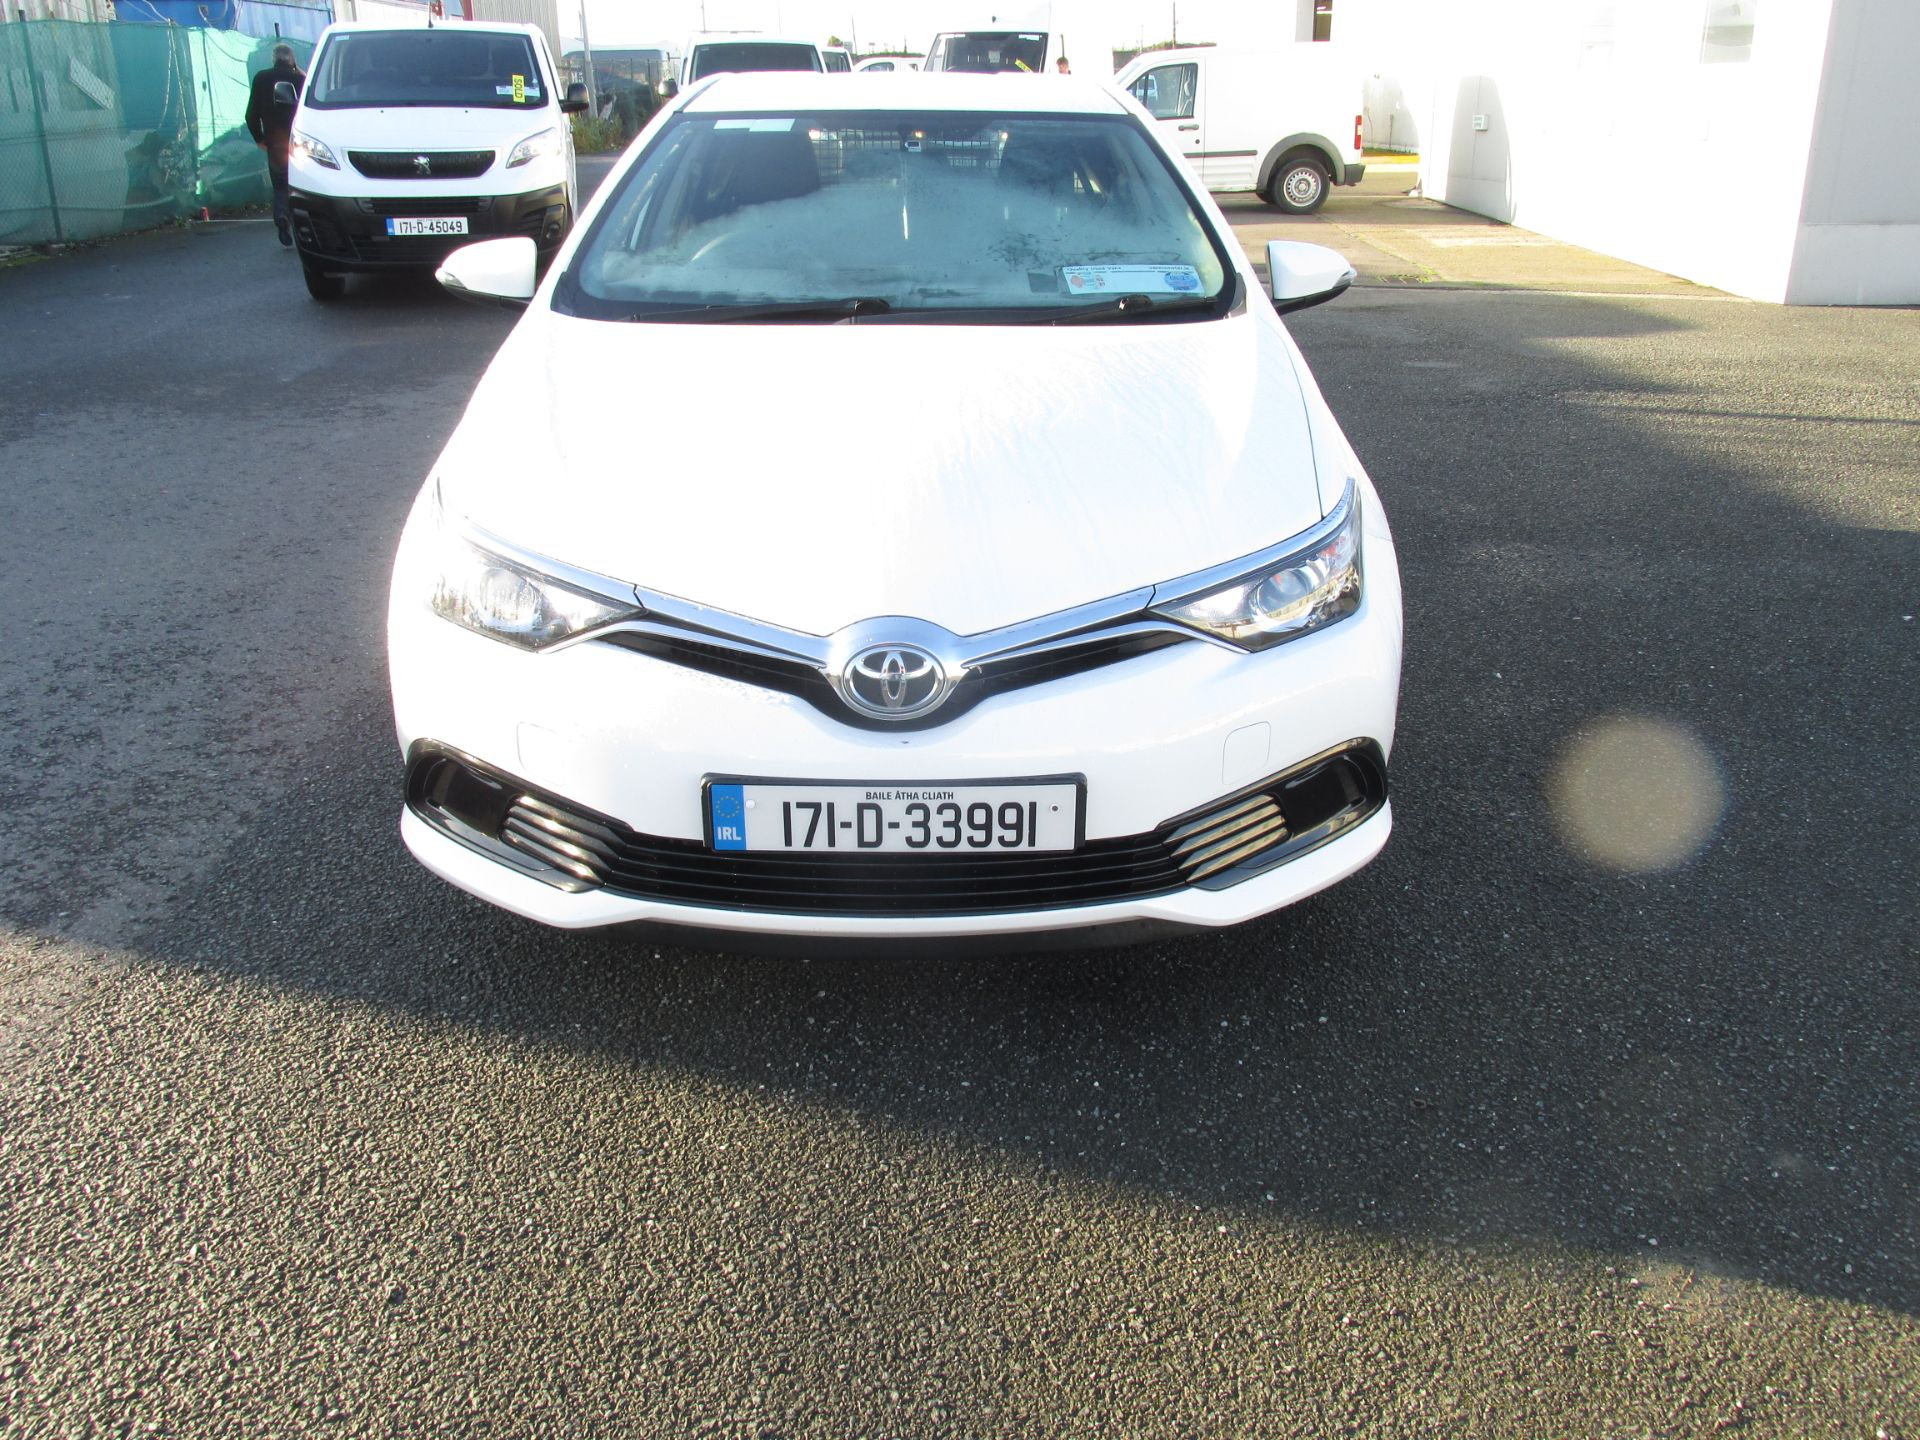 2017 Toyota Auris 1.4d-4d Terra 4DR click and collect call sales for more info (171D33991) Image 2